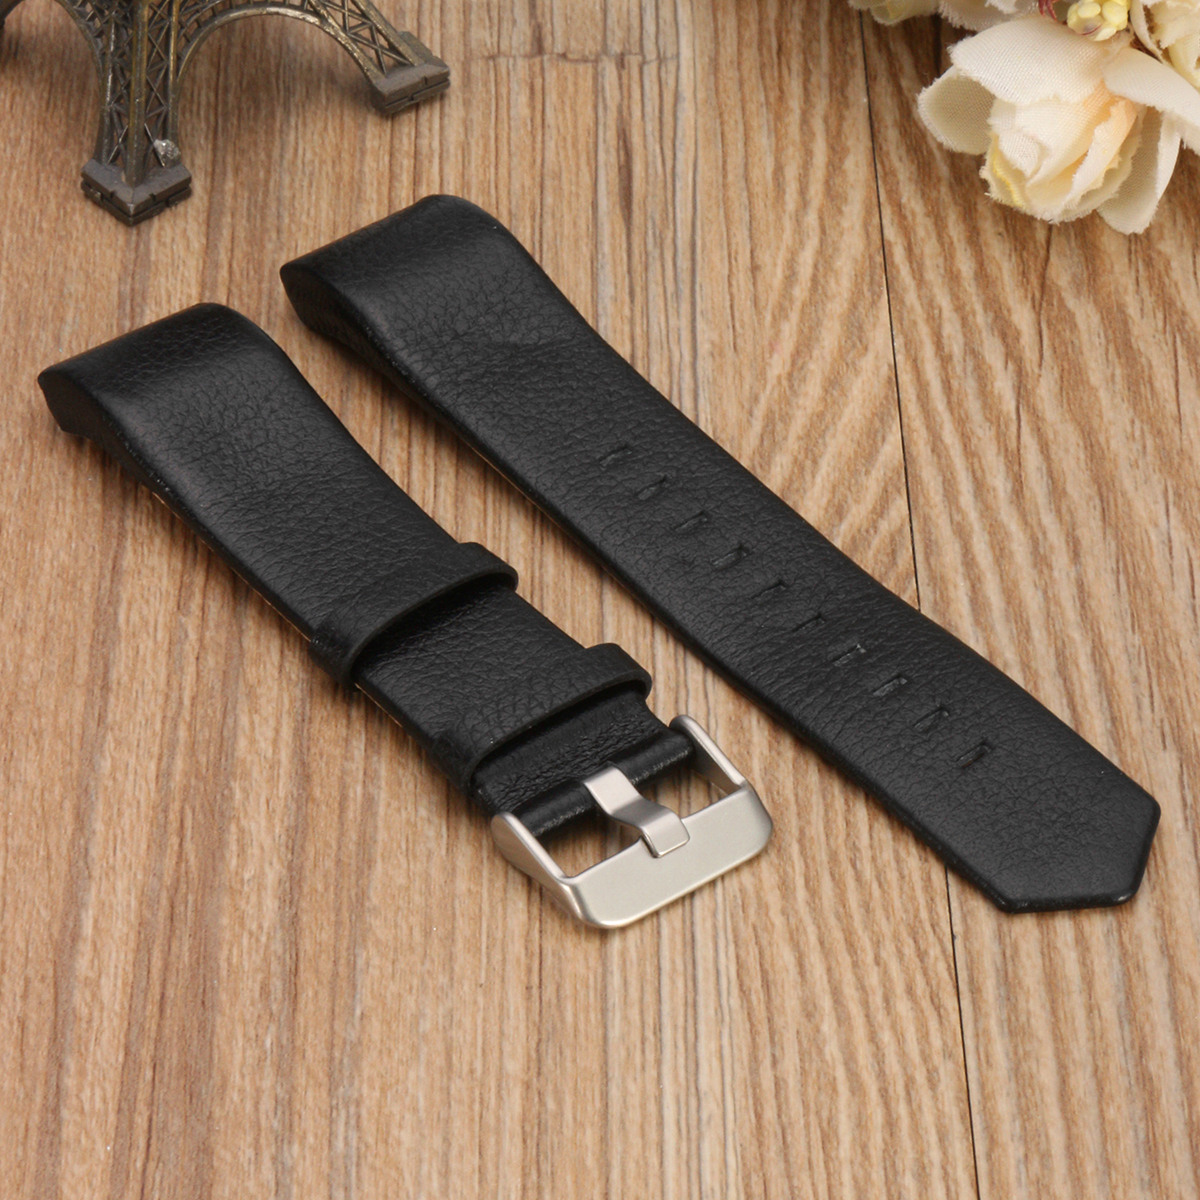 Replacement Sports Soft Durable Leather BraceleT-strap Band Watch Band for Fitbit Charge 2